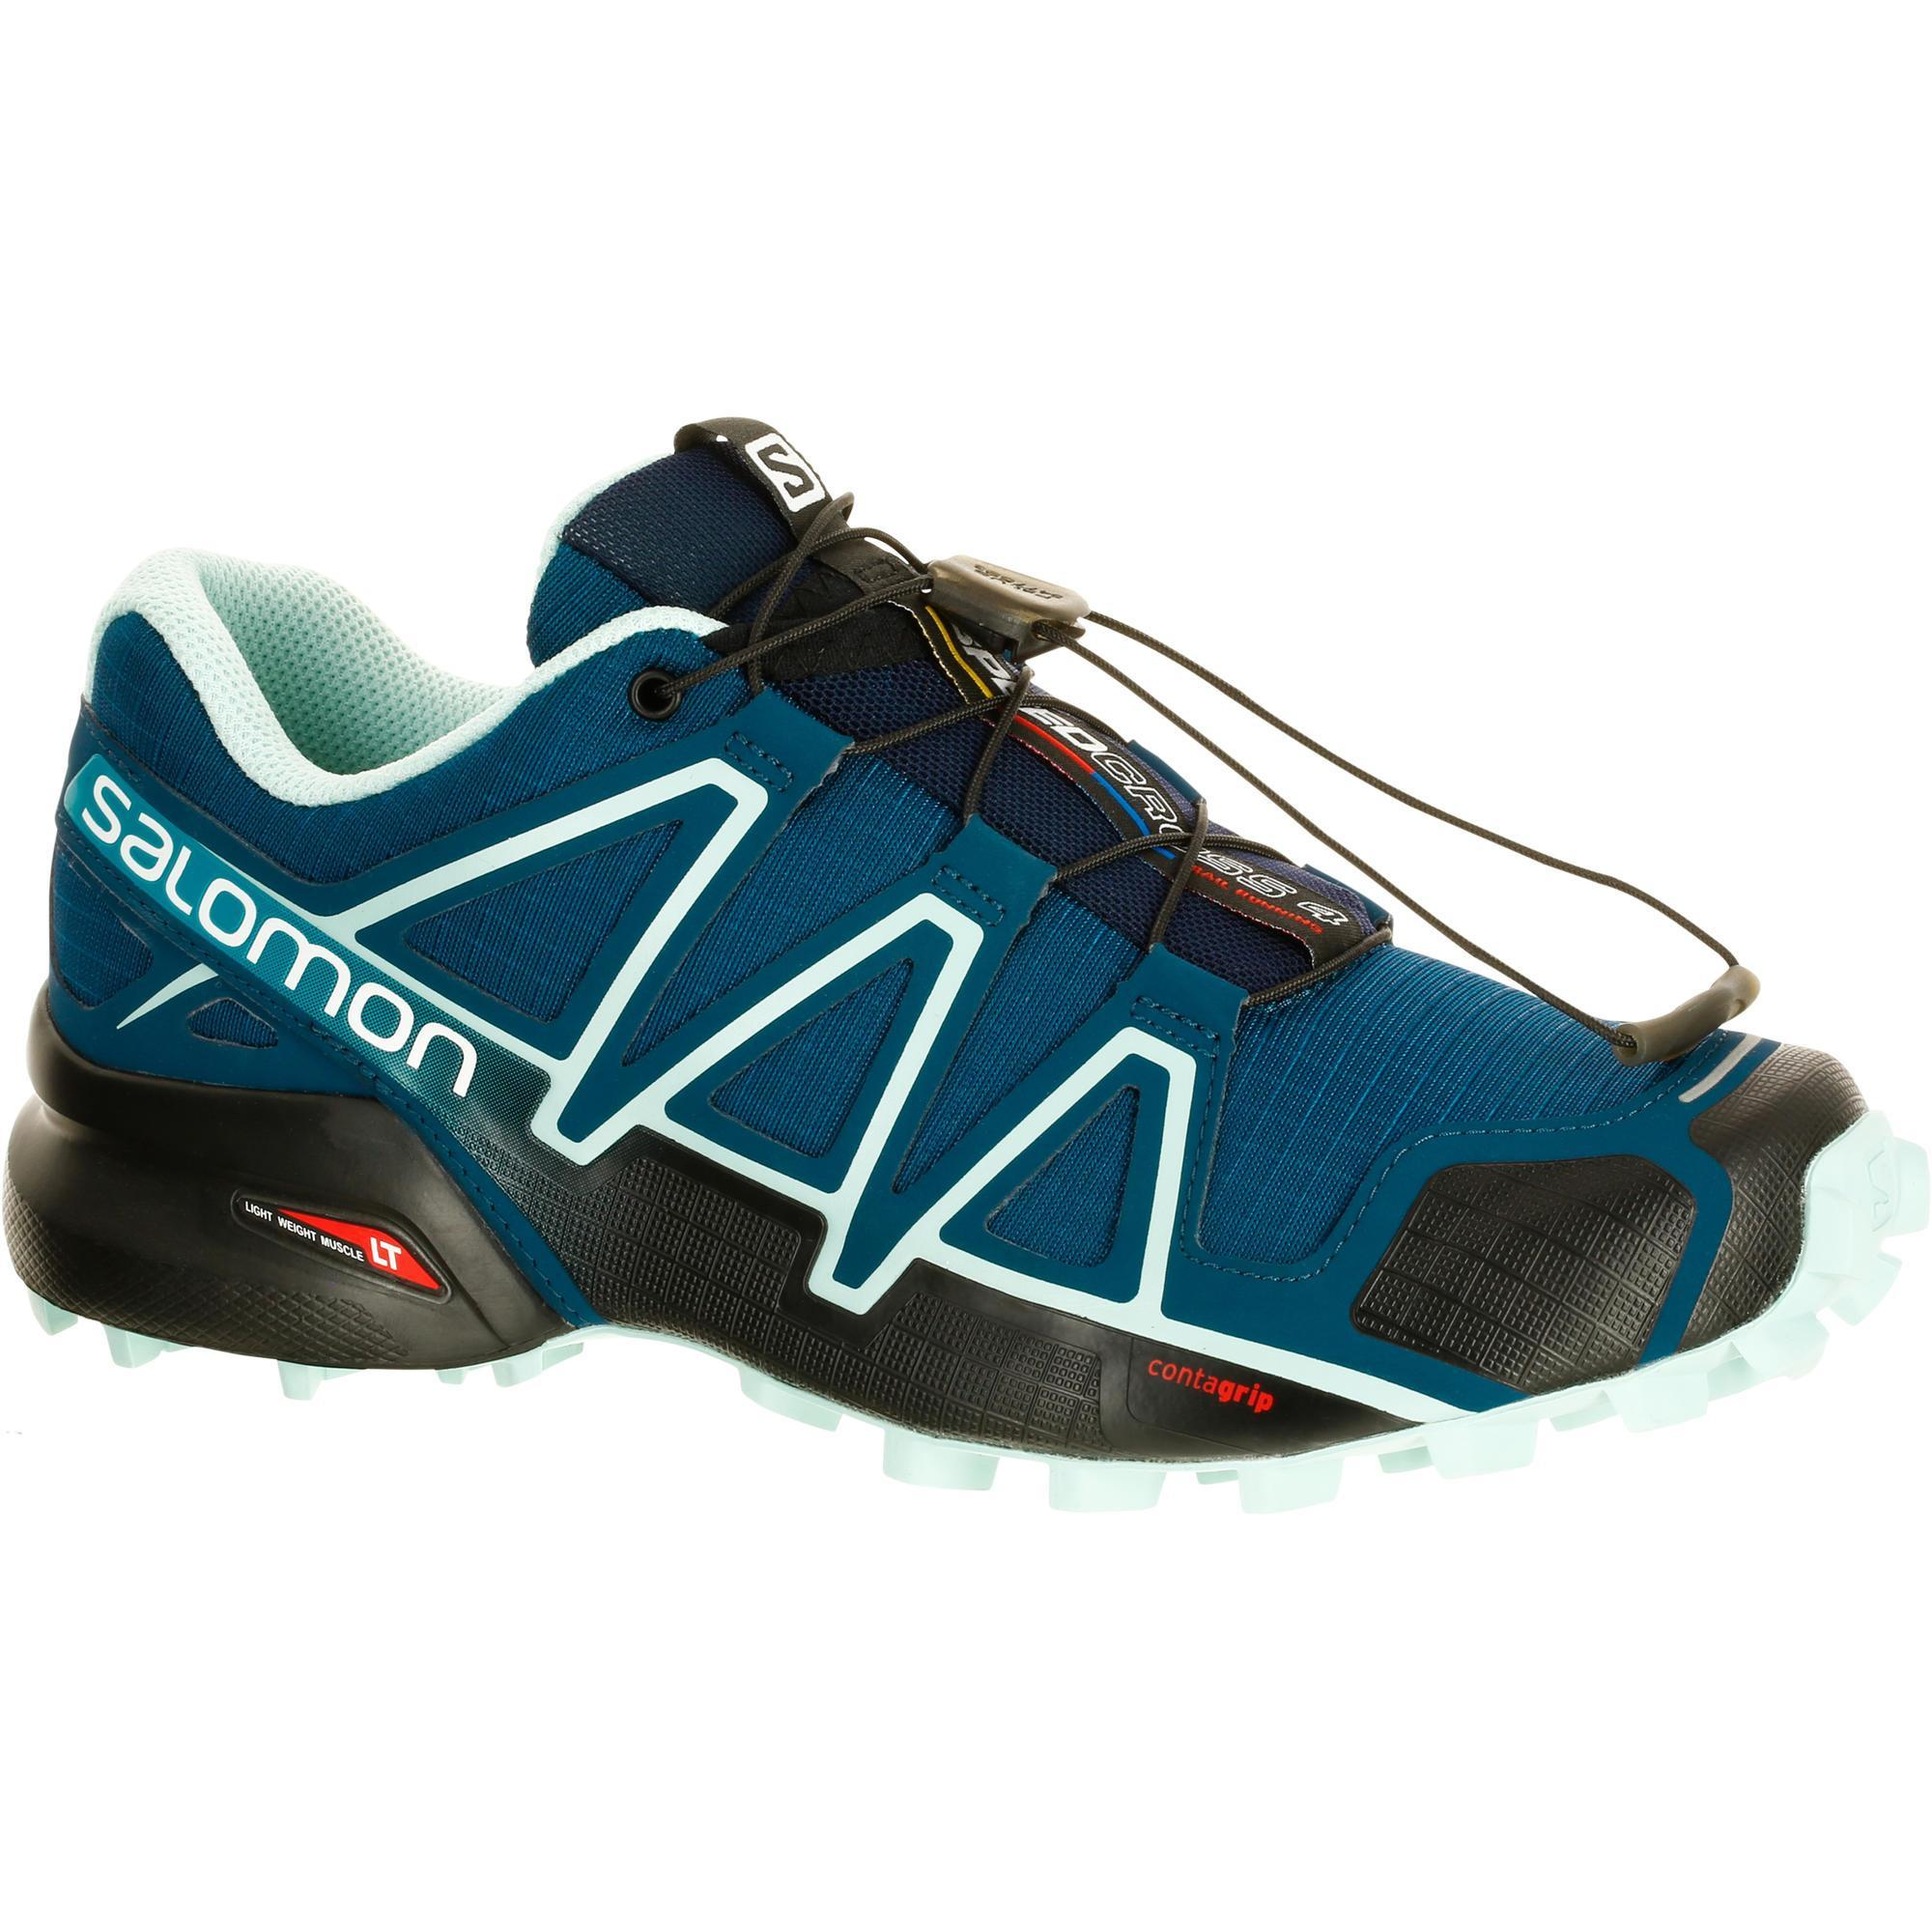 new arrival 09b6c fea5d Comprar zapatillas de trail running   Decathlon